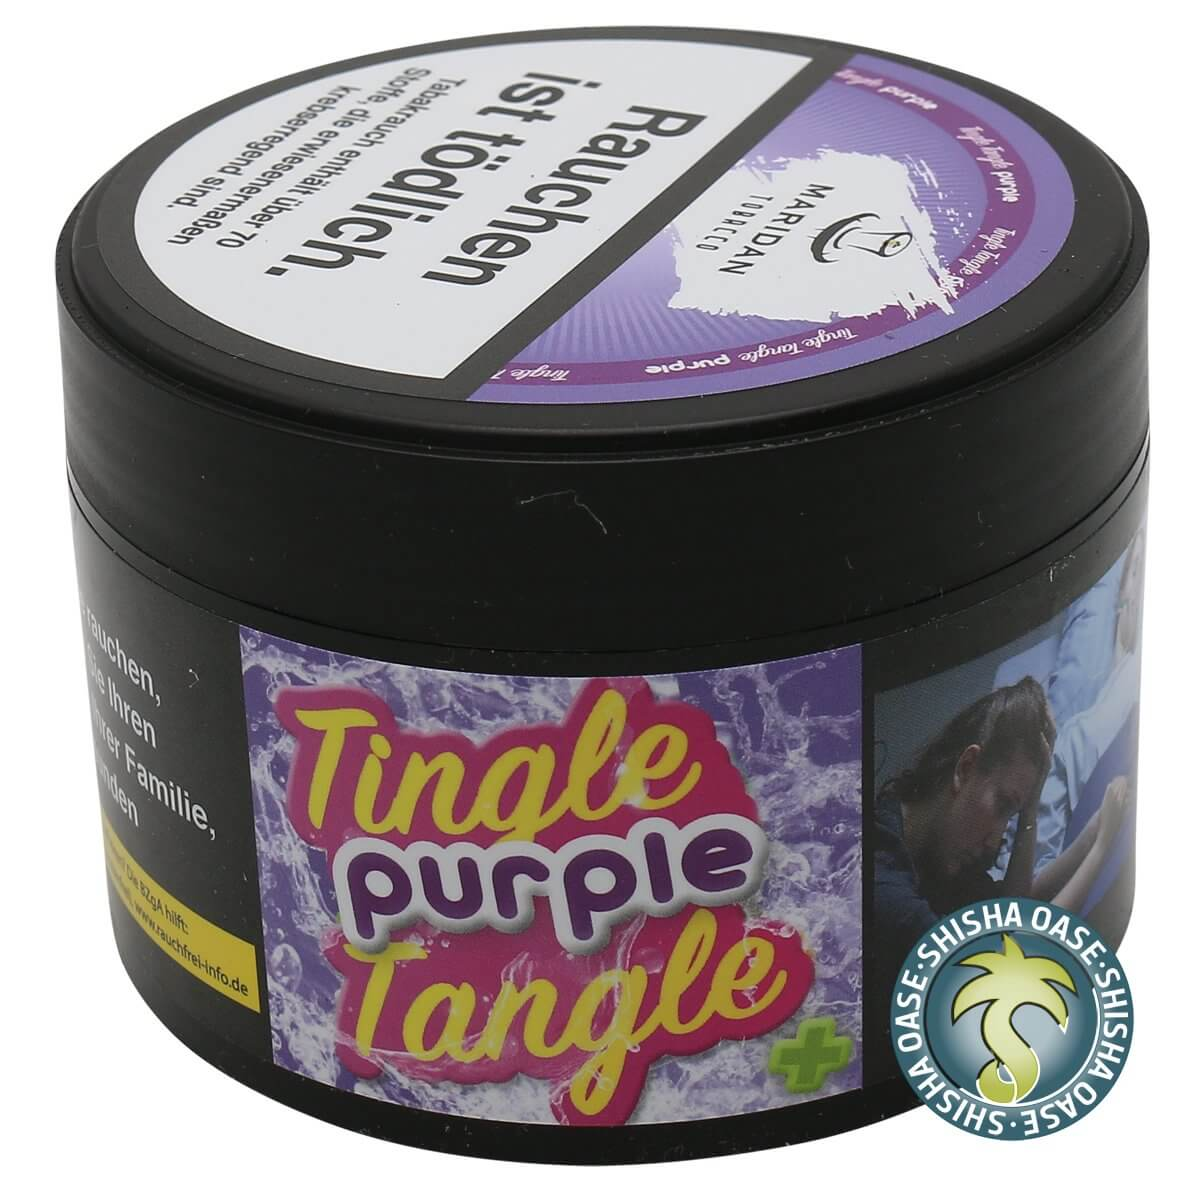 Maridan Tabak 200g Dose - Tingle Tangle Purple